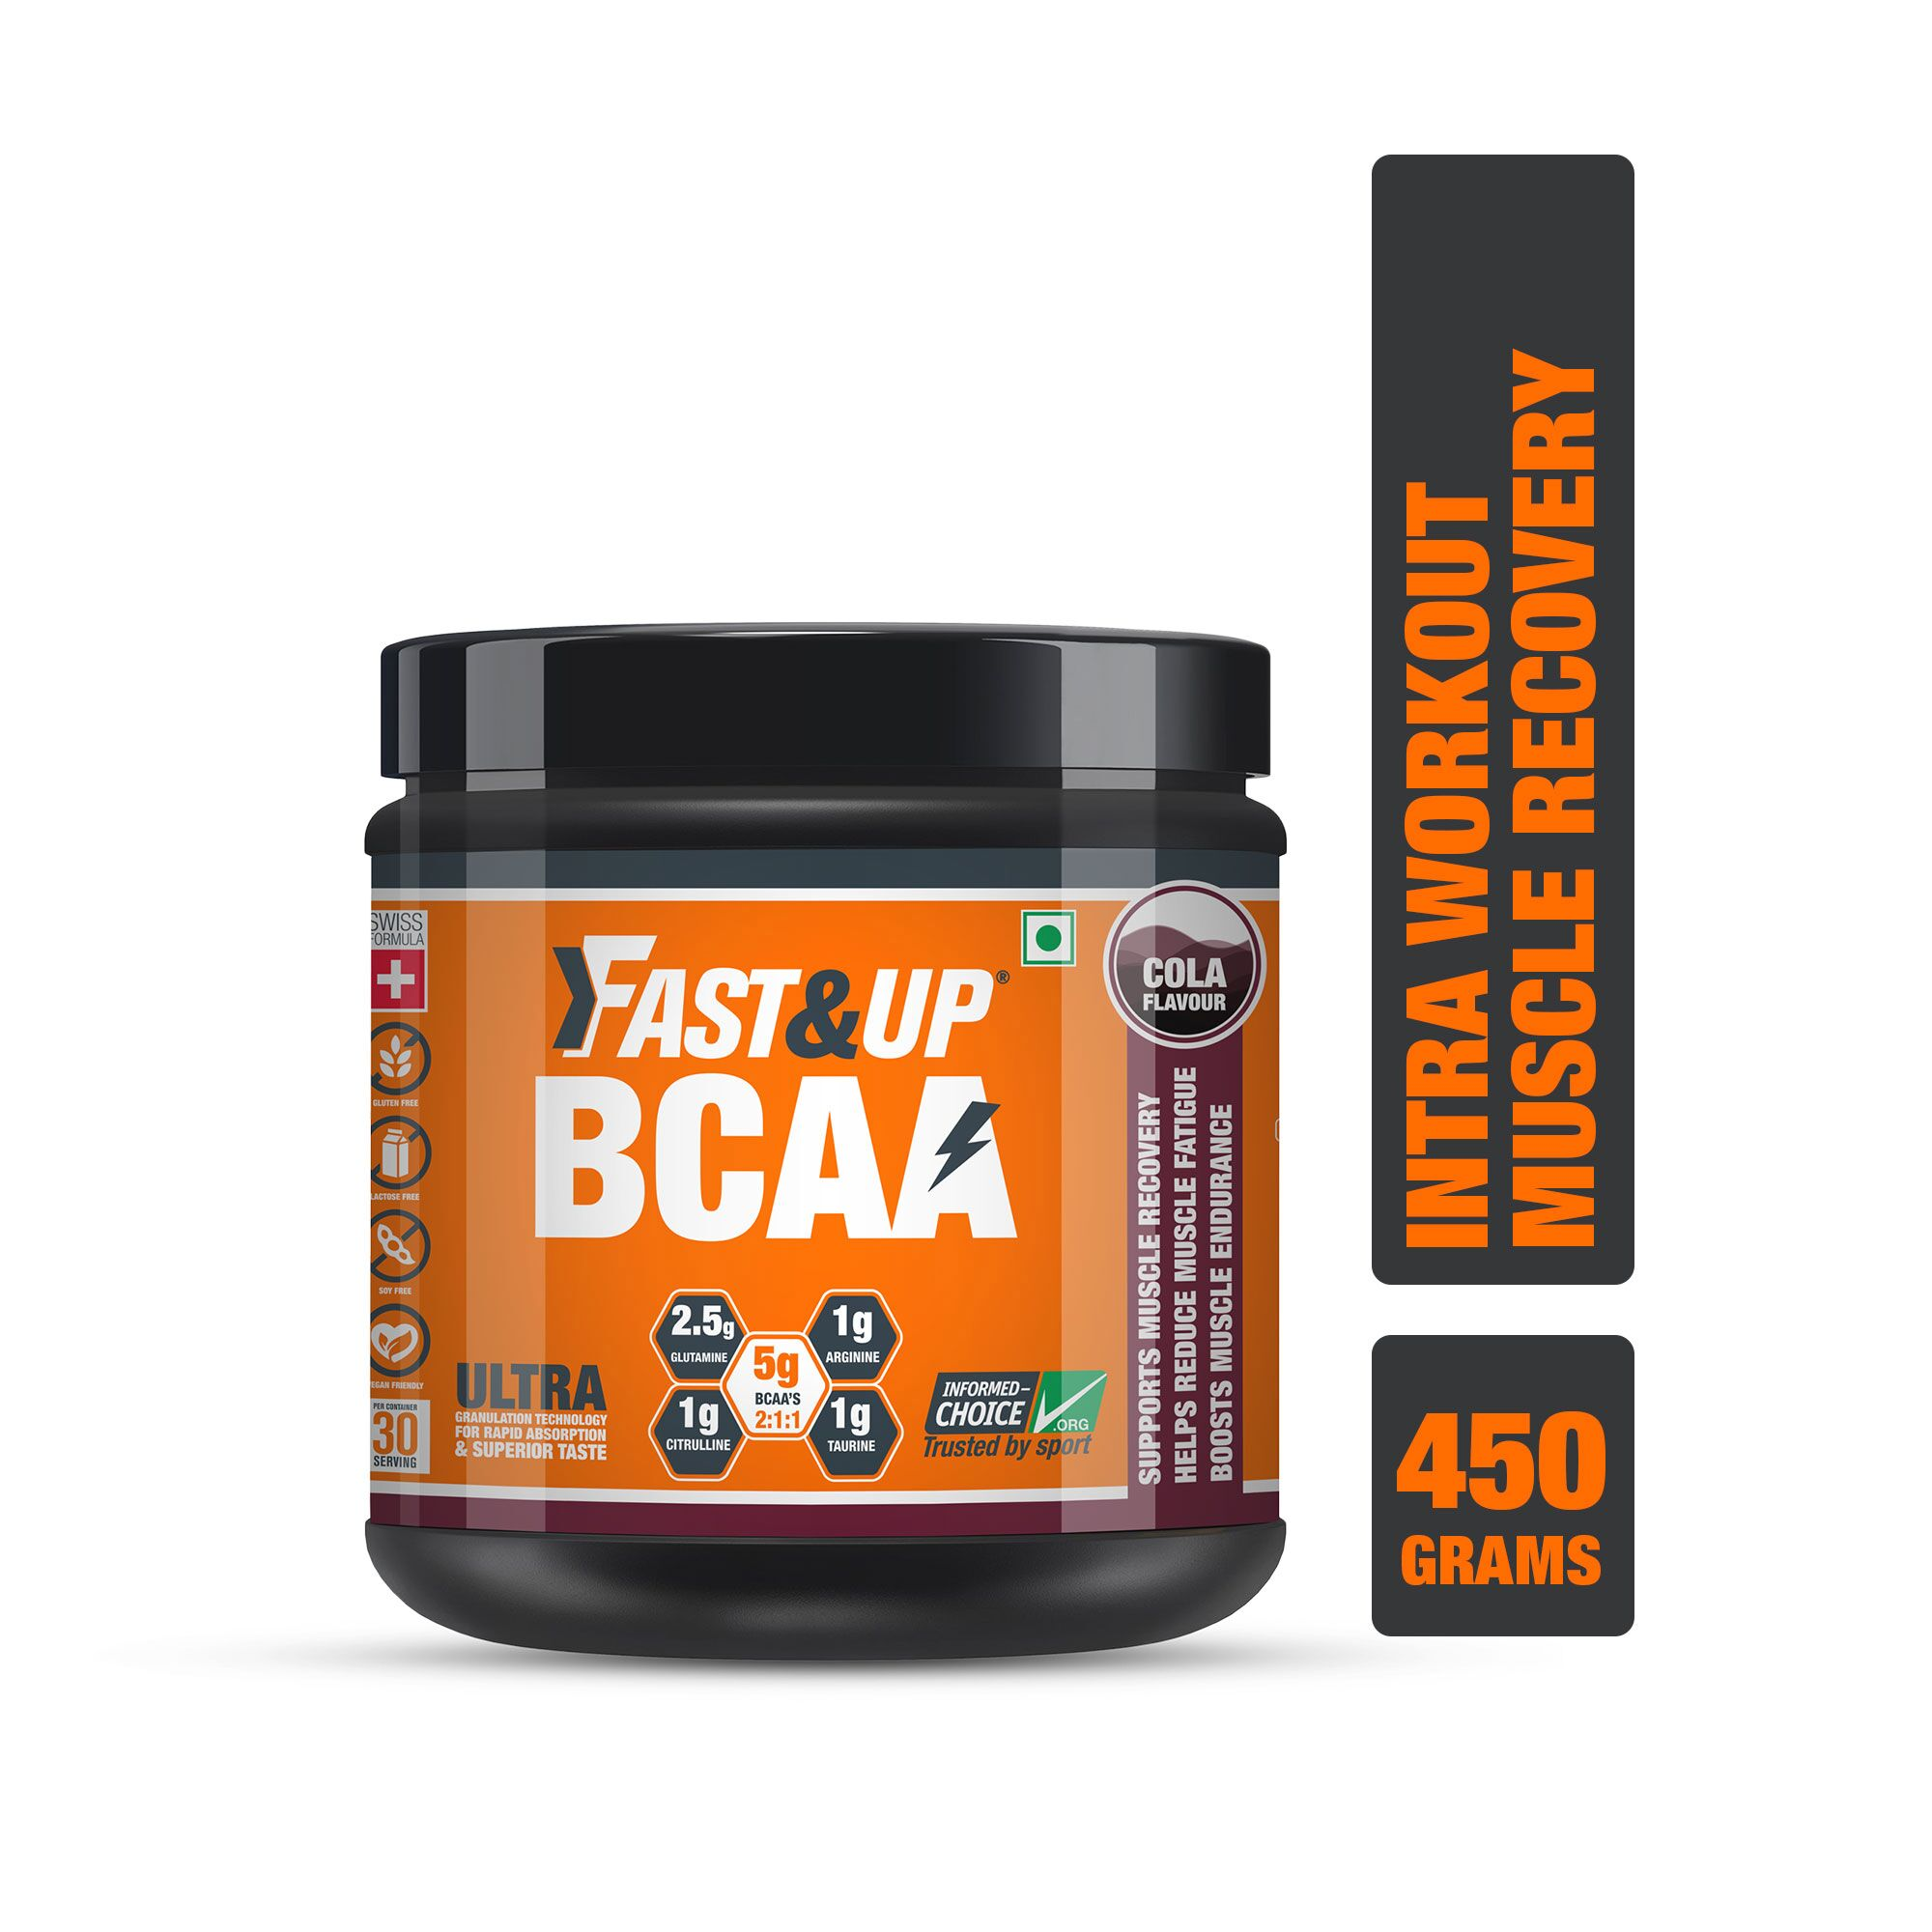 Fast&Up BCAA 2:1:1 For Pre/Intra/Post Workout With Arginine, Glutamine And Muscle Activation Boosters - 450 Gms - Cola Flavour